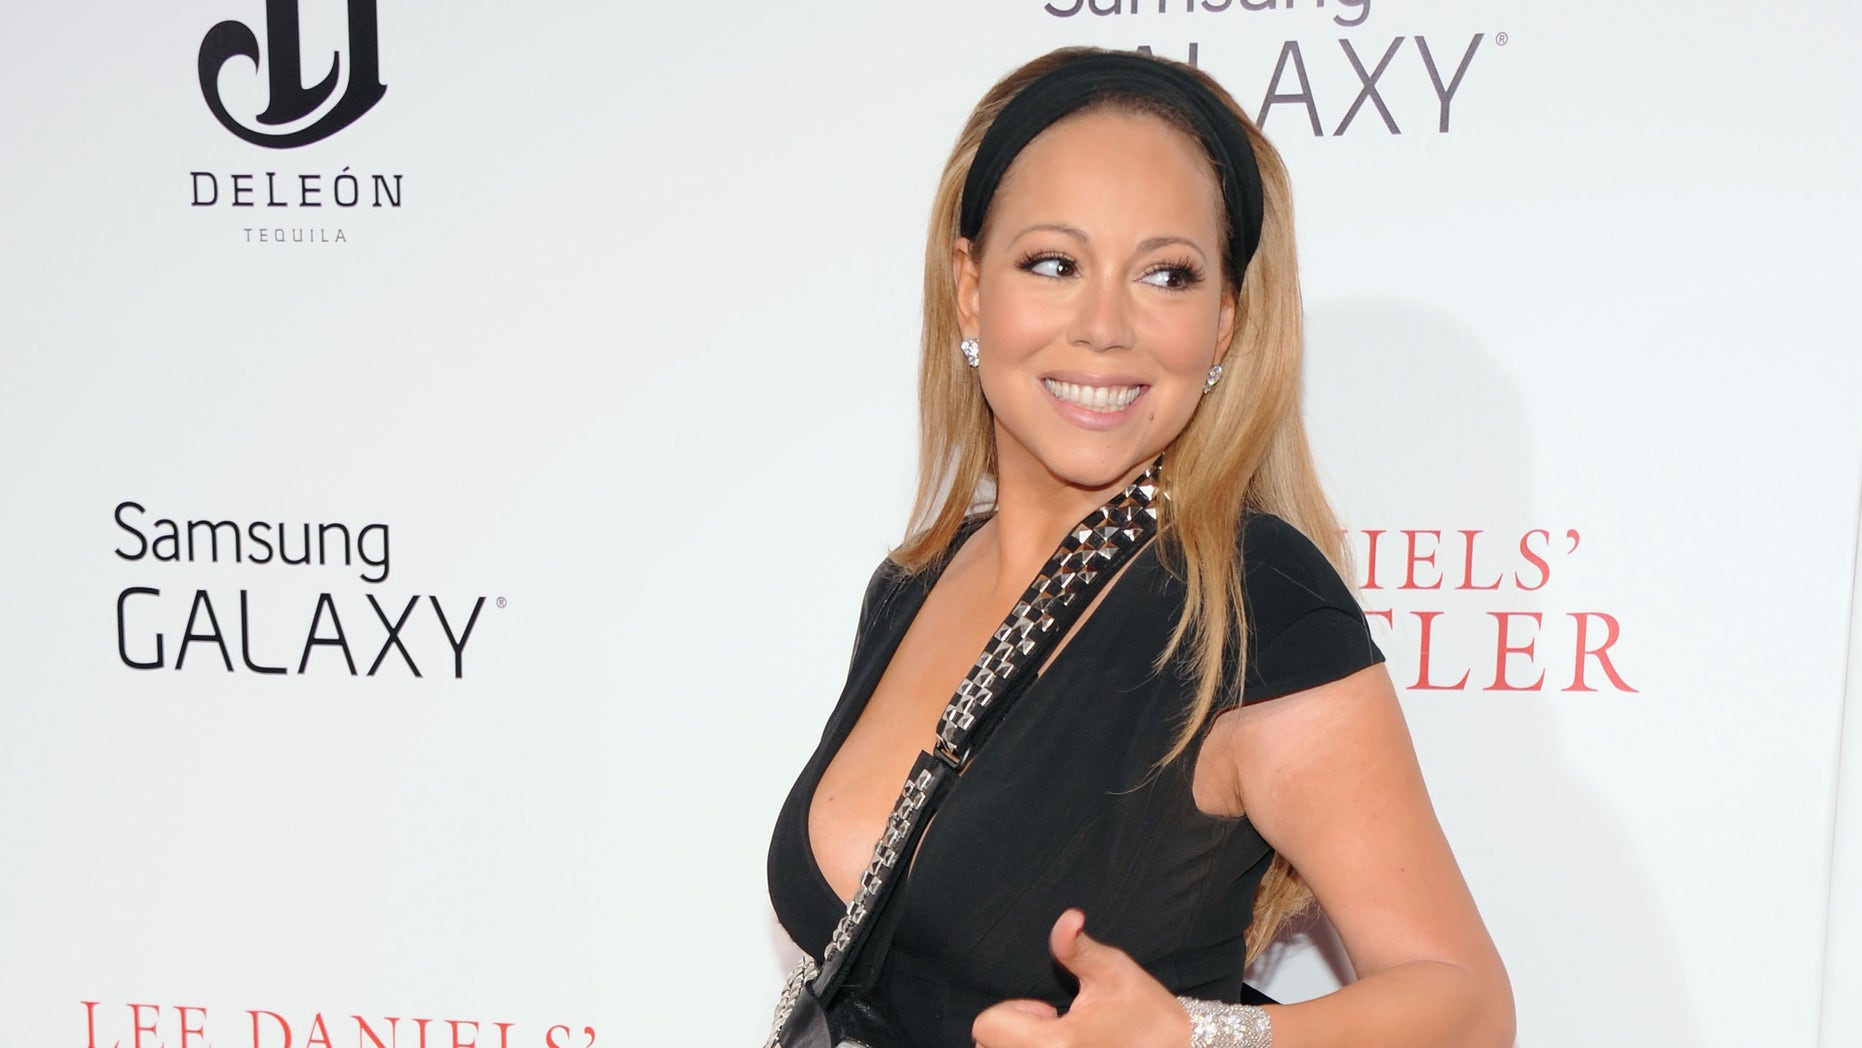 """NEW YORK, NY - AUGUST 05:  Mariah Carey attends Lee Daniels' """"The Butler"""" New York Premiere at Ziegfeld Theater on August 5, 2013 in New York City.  (Photo by Jamie McCarthy/Getty Images)"""